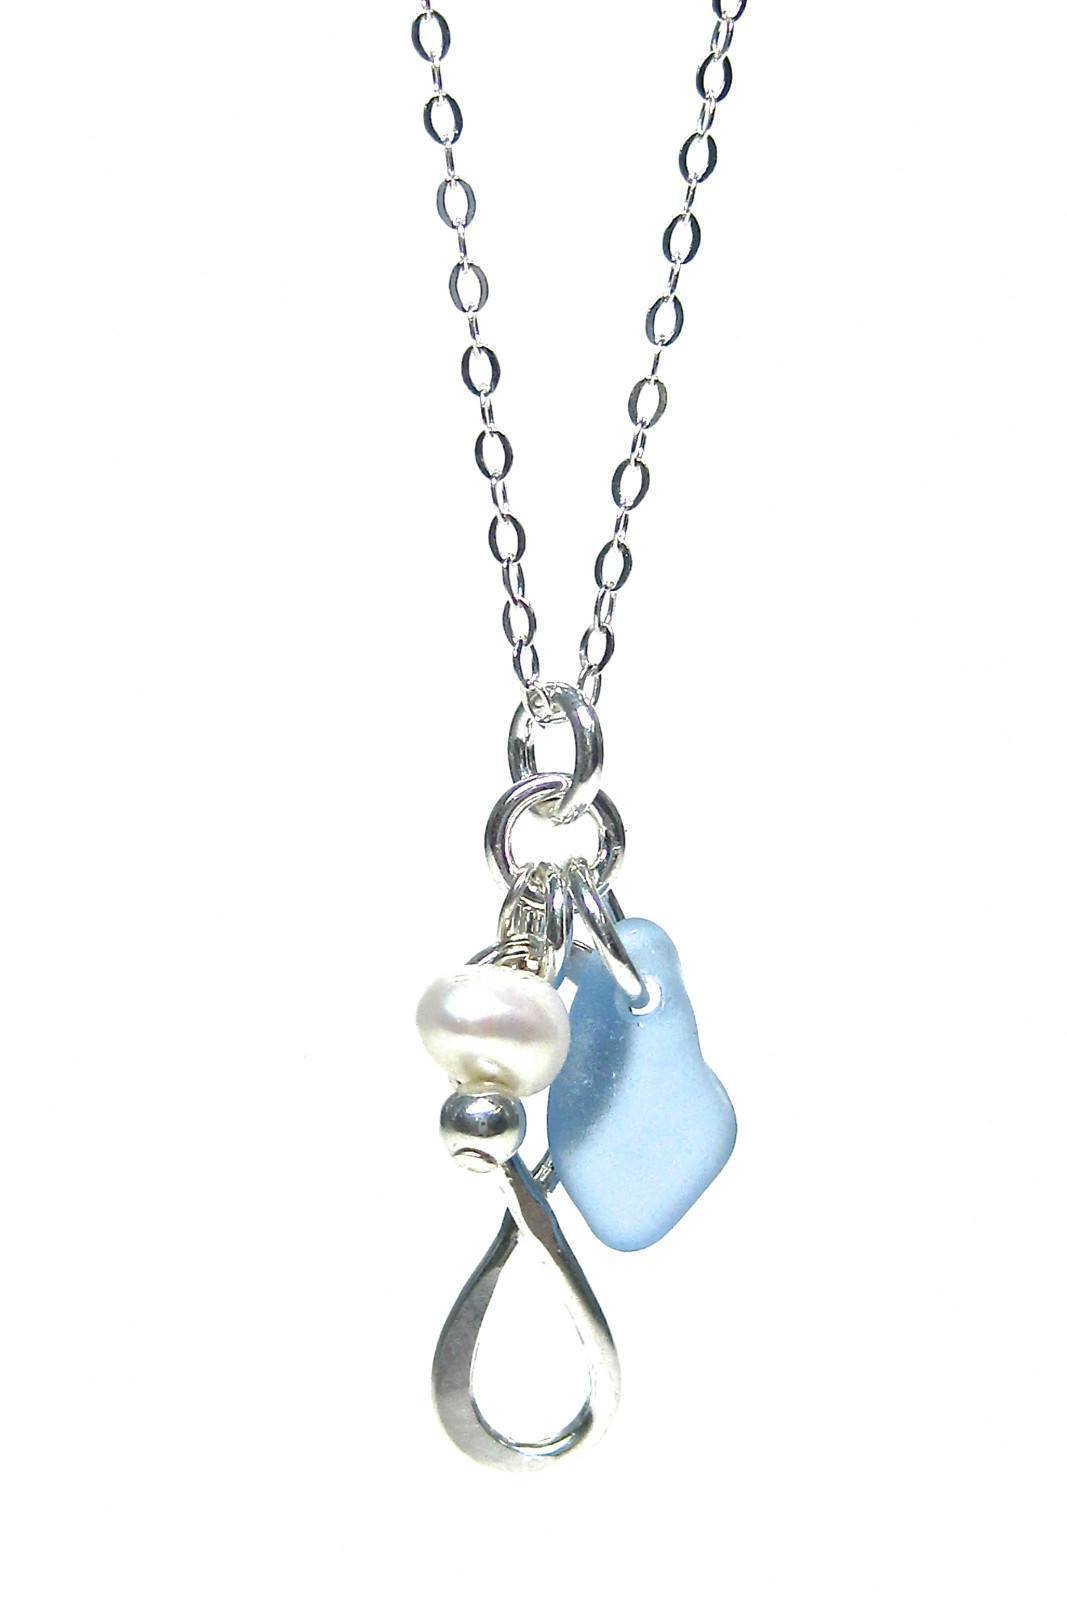 Womens>Accessories>Jewelry - Eternal Love - Inspirational Necklace - Sea Glass